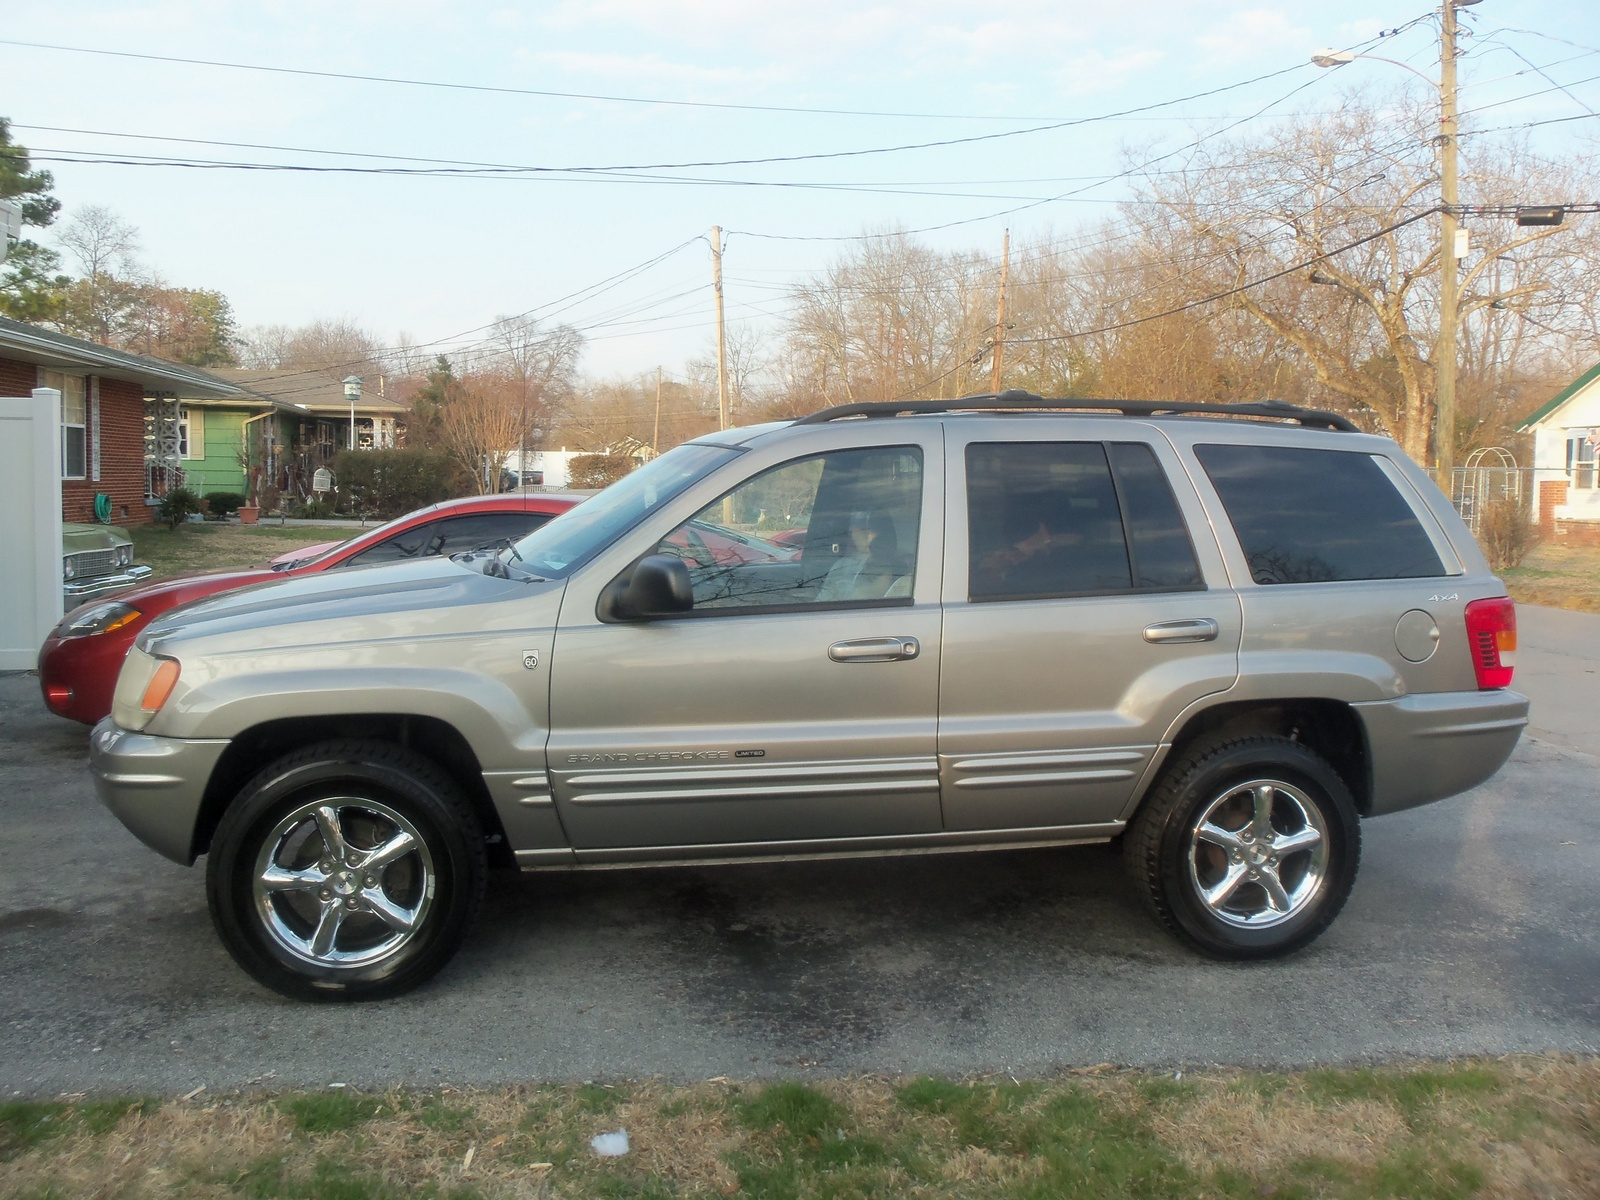 3rd Row Jeep Cherokee >> Grand Cherokee Third Row Seat.html | Autos Post